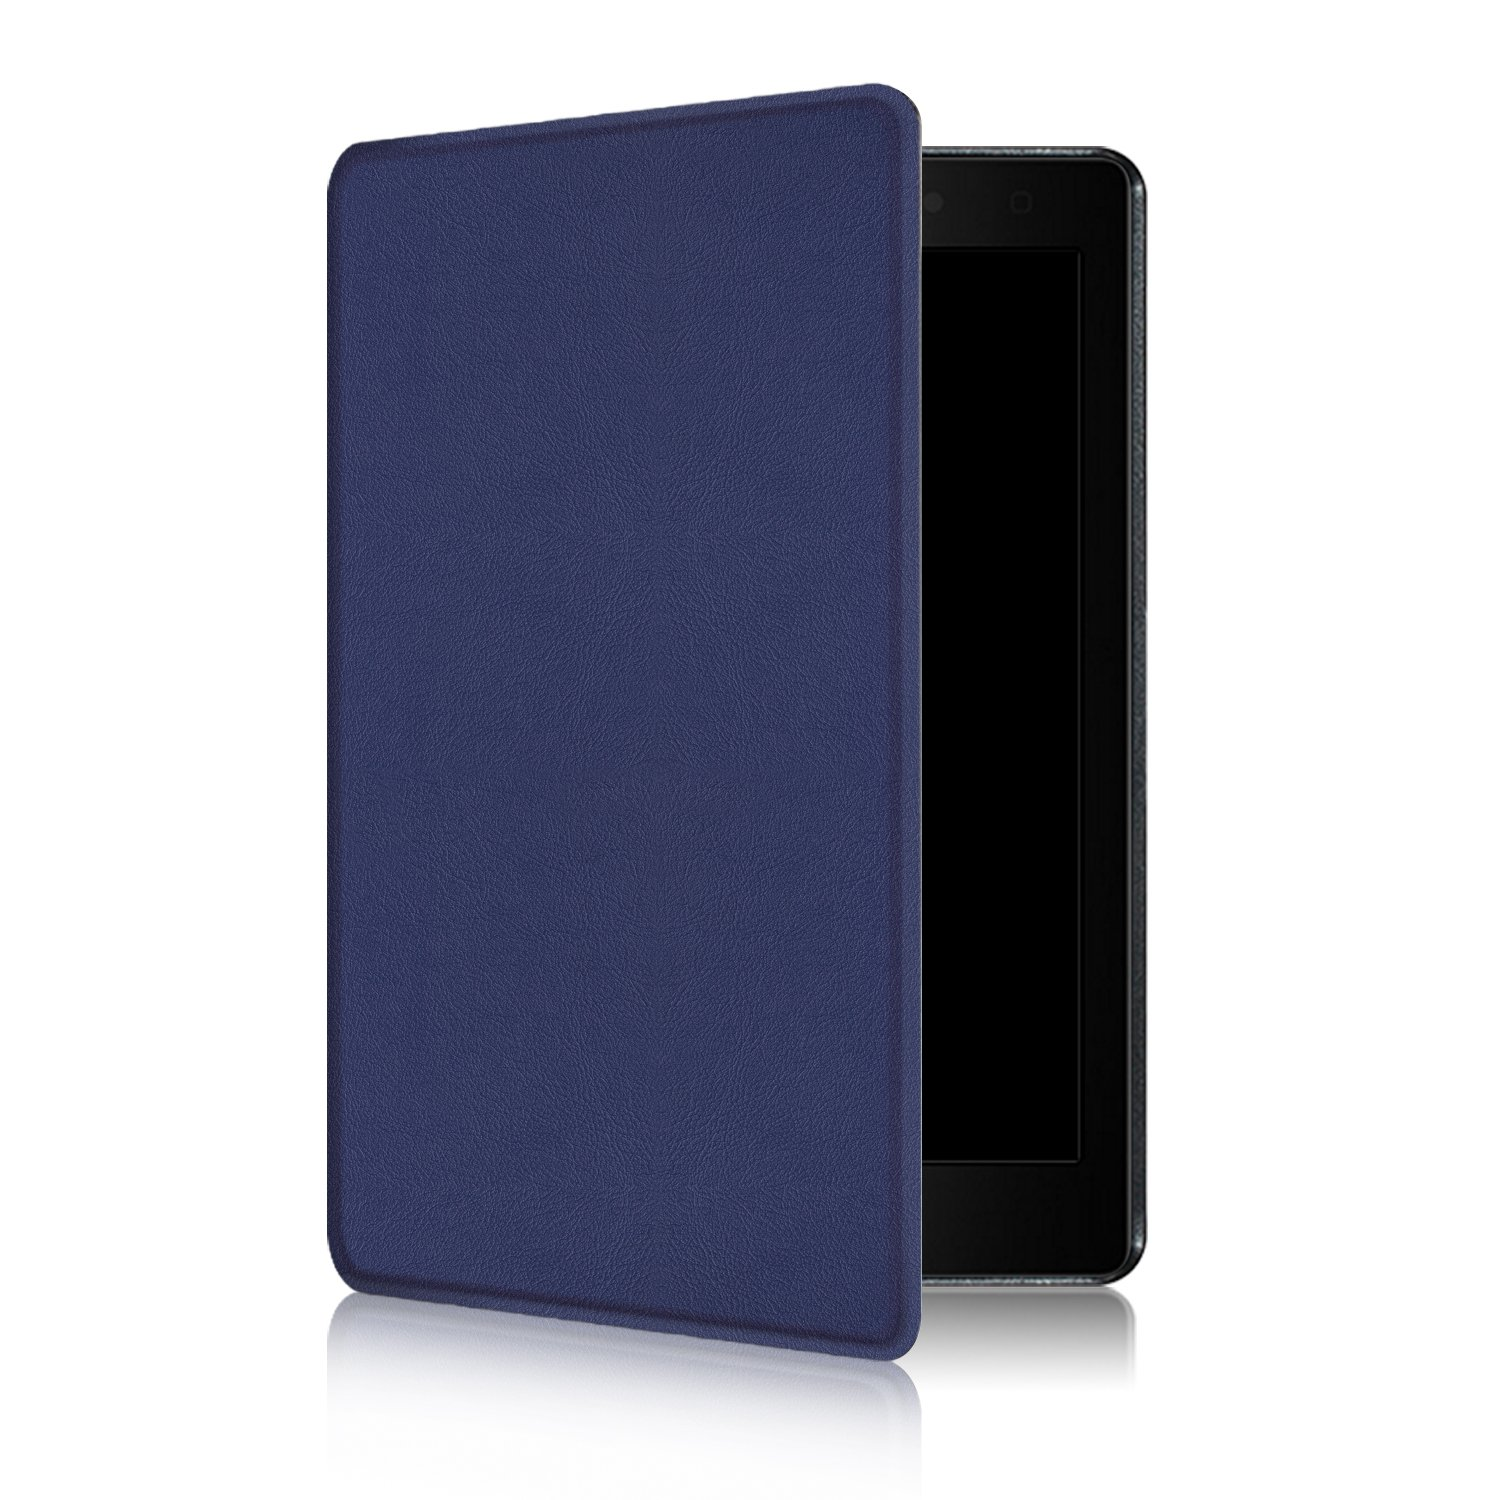 ENJOY-UNIQUE For Kobo Aura One Smart PU Leather Case Cover Ultra Thin Case Cover for Kobo Aura One 7.8inch Ereader